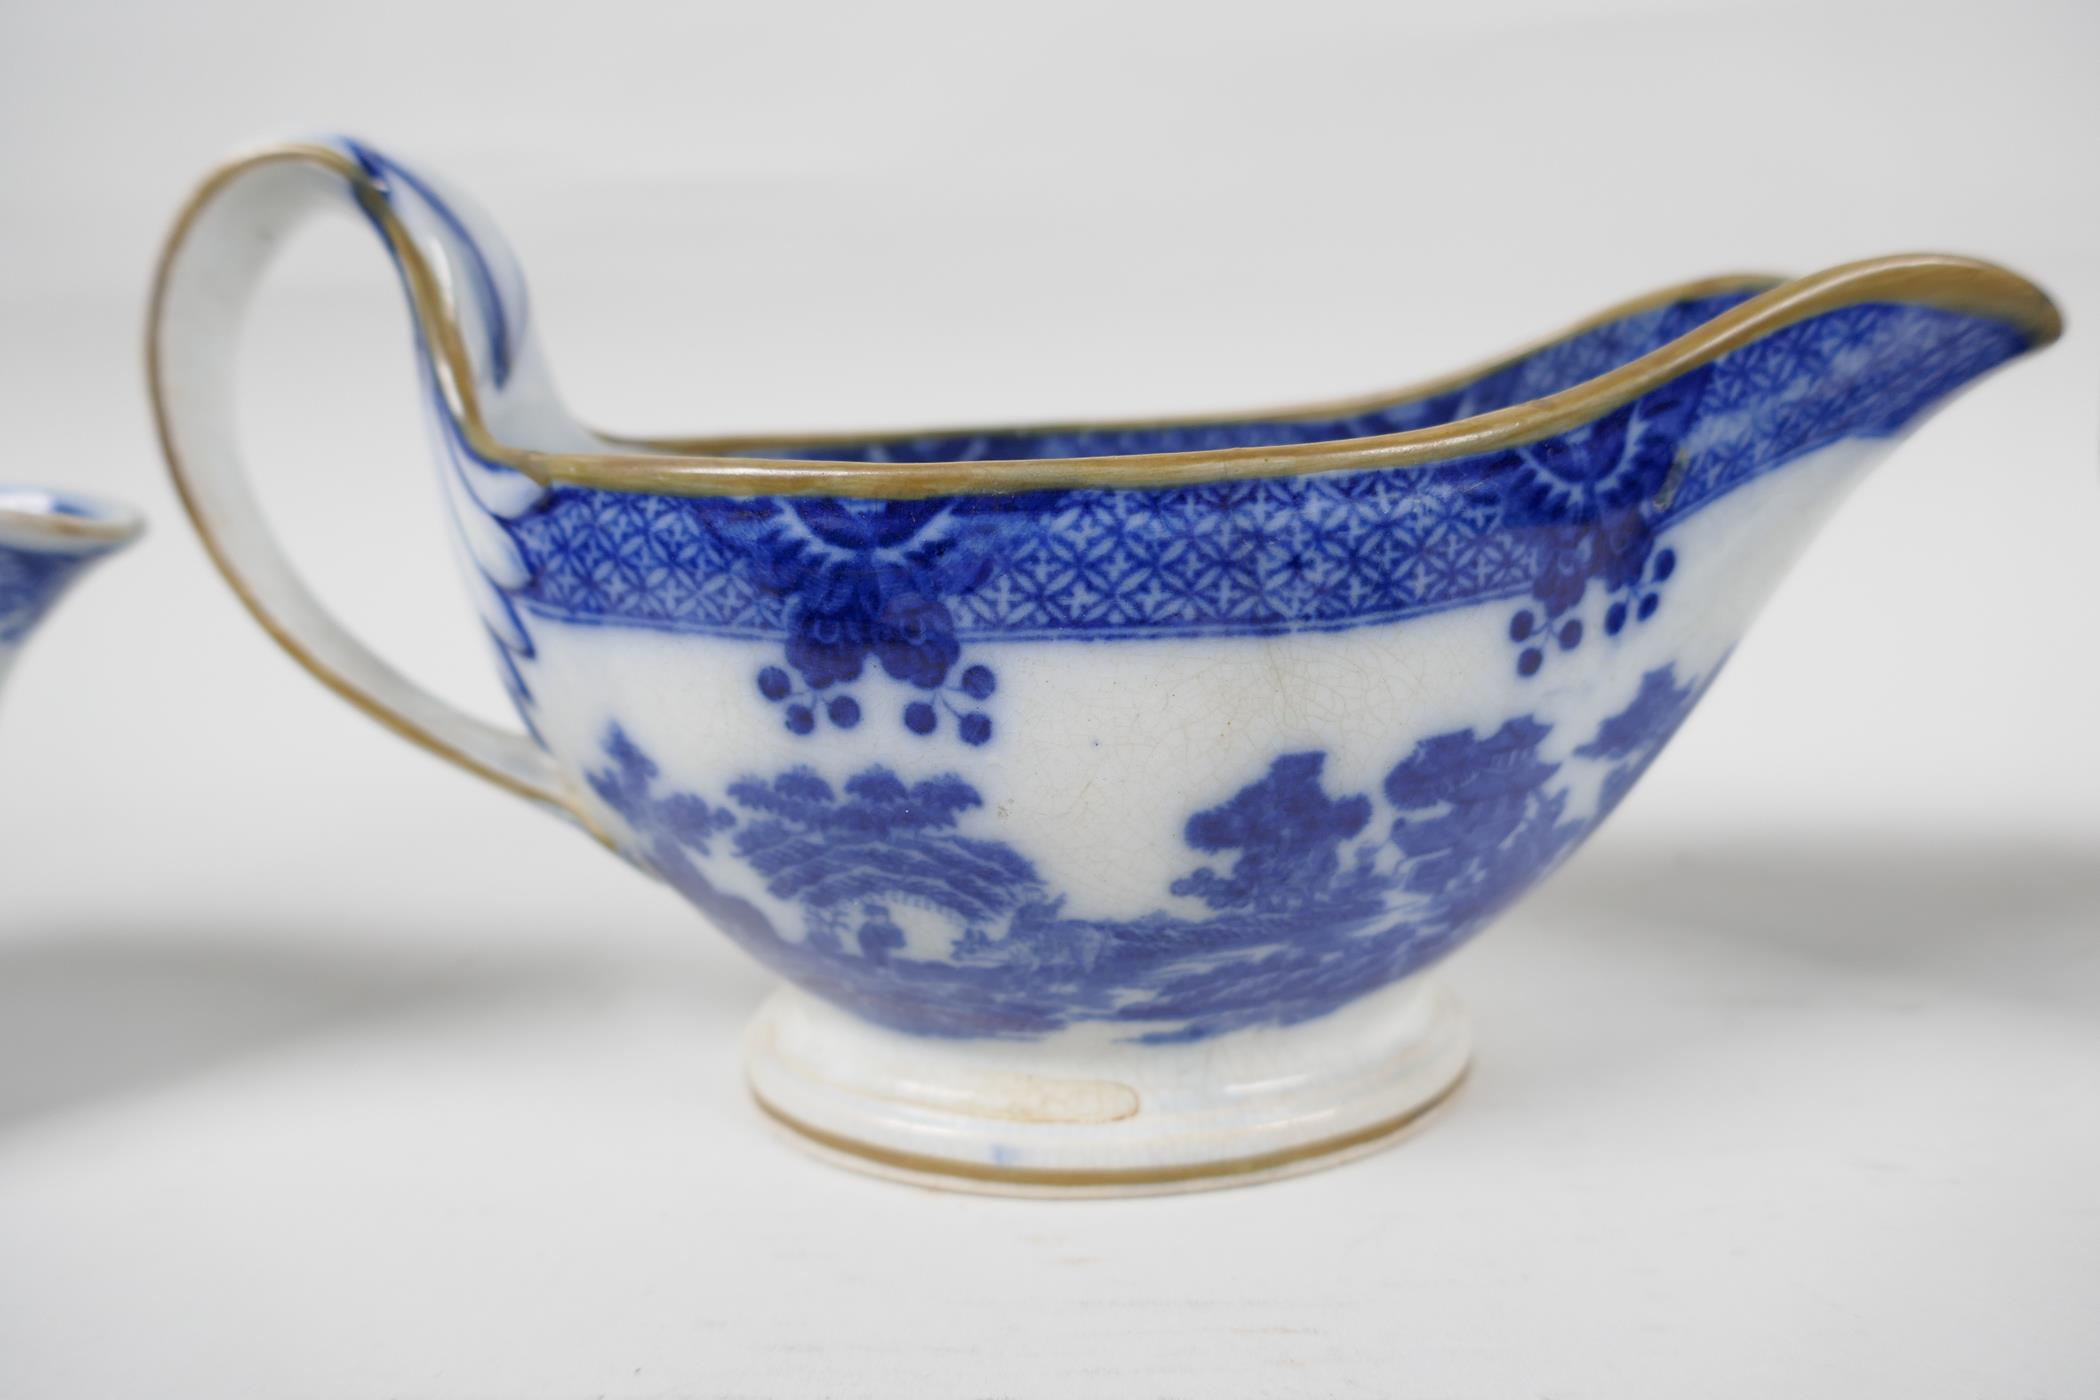 Five late C18th/early C19th English blue and white pottery sauce boats to include Boy on a Buffalo - Image 5 of 9